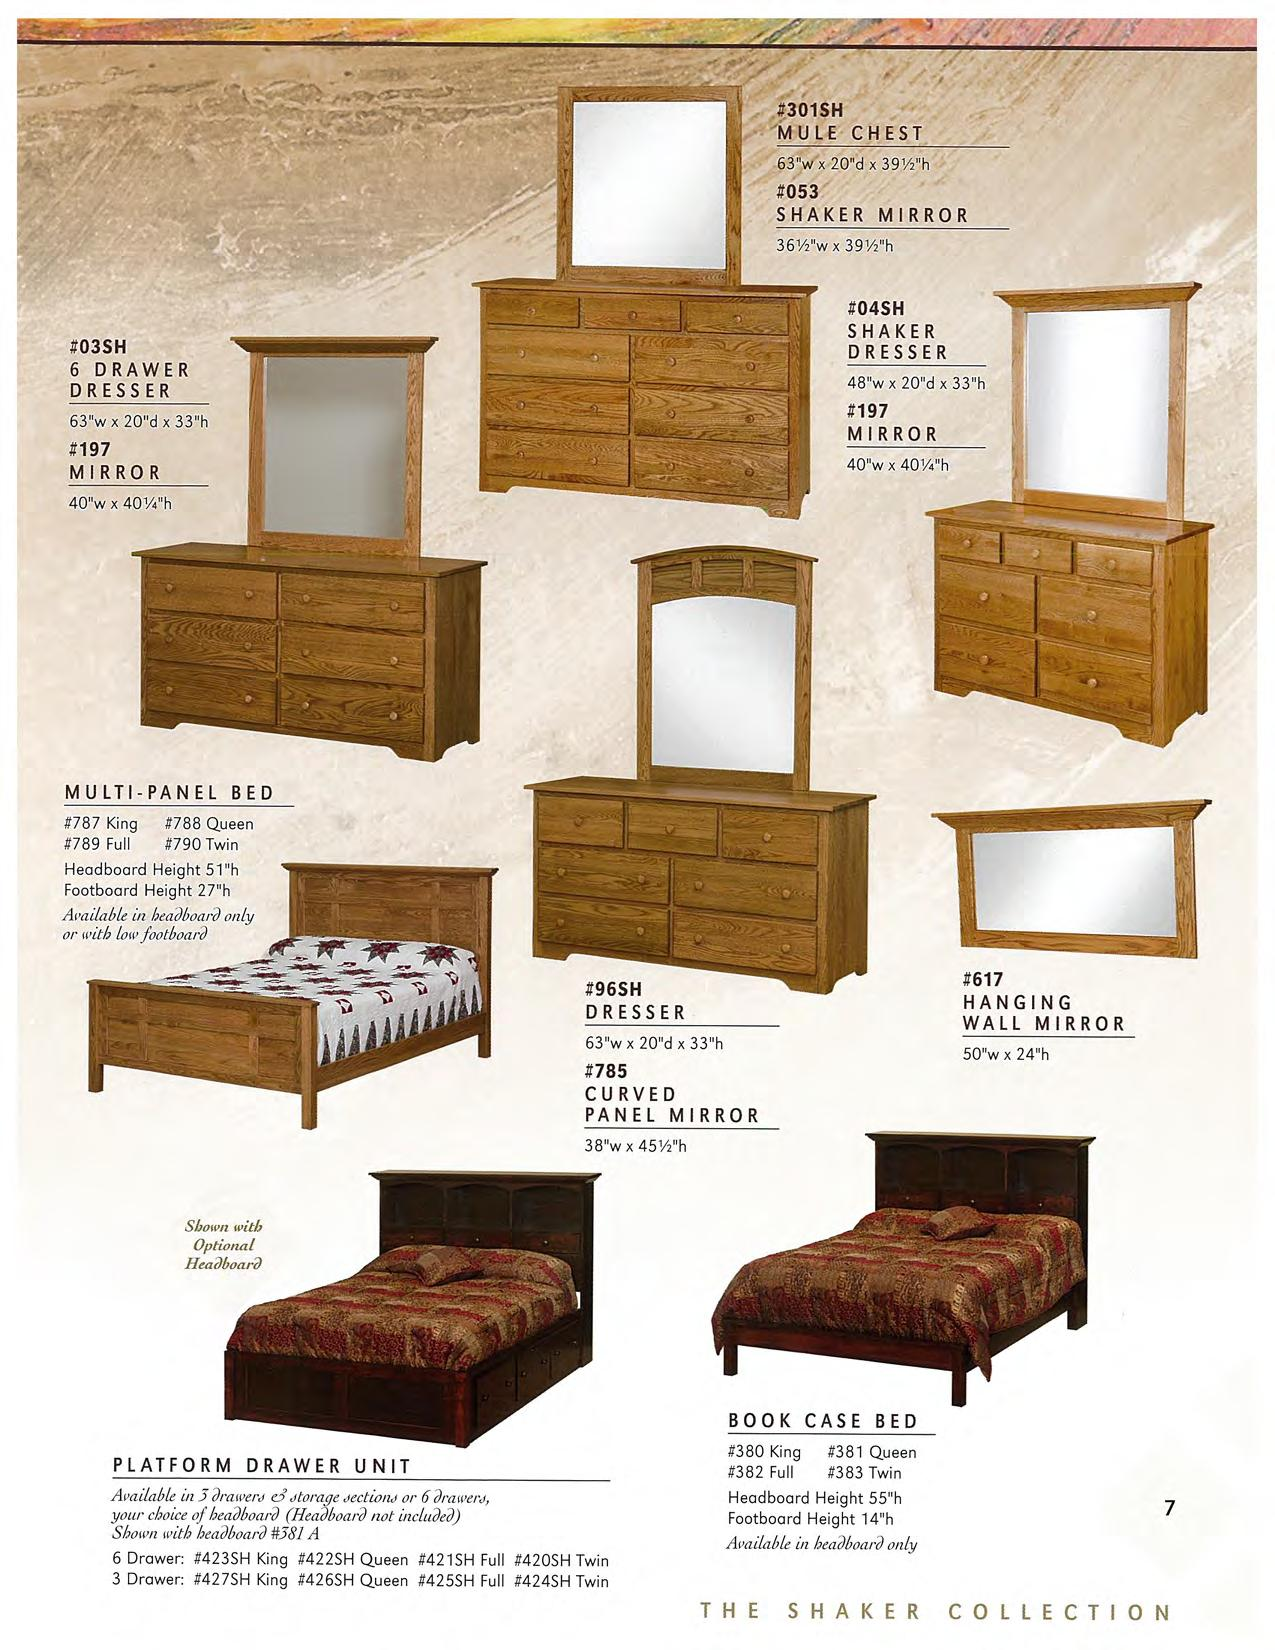 furniture-page-007